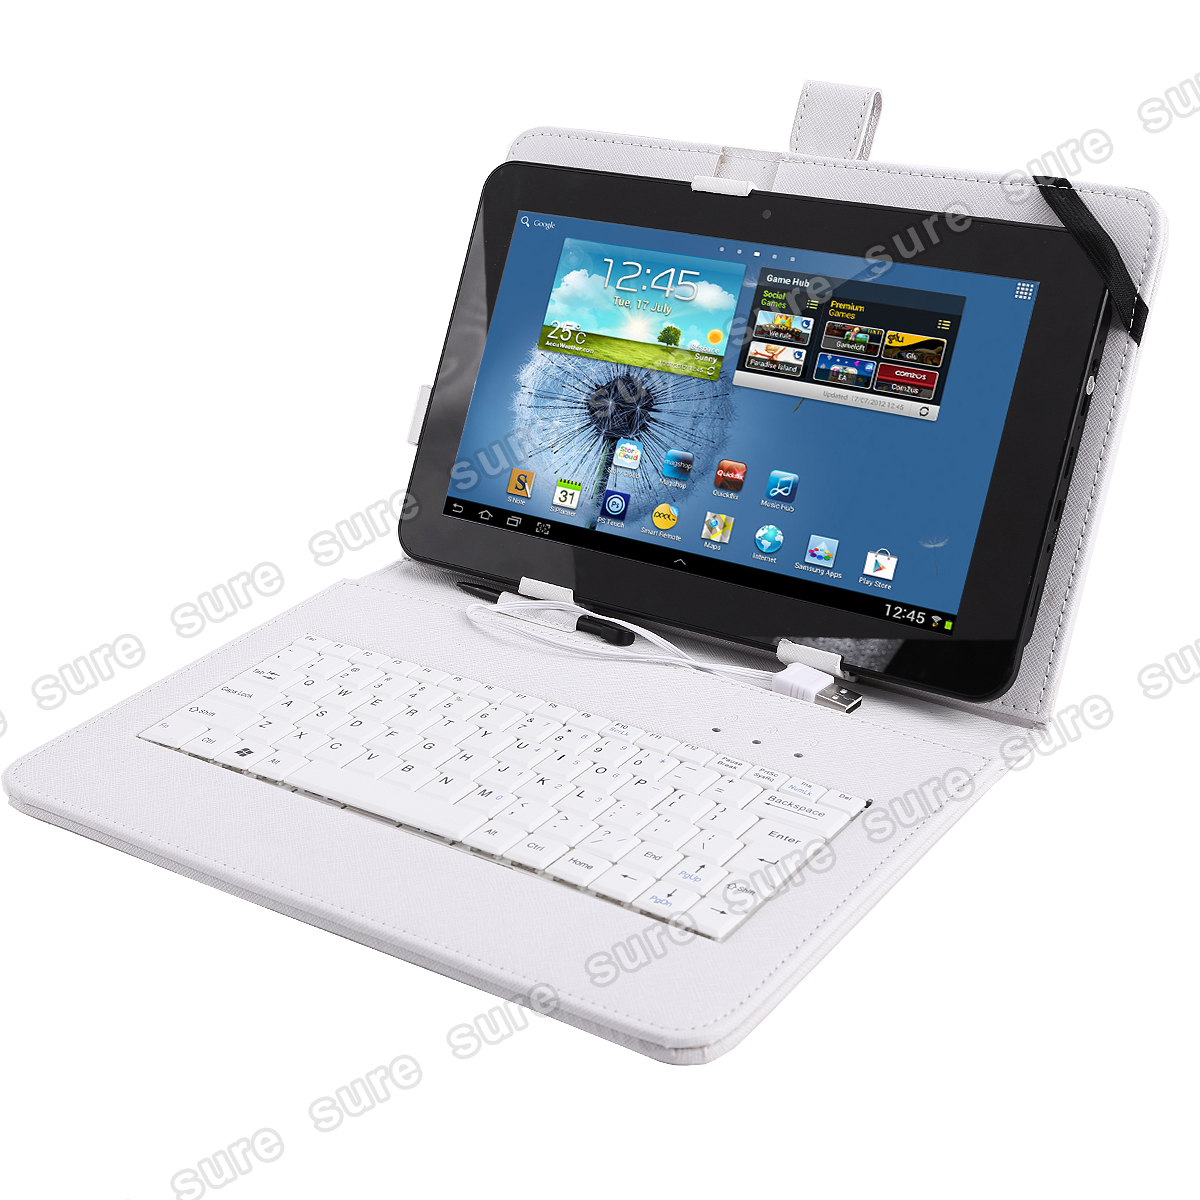 tasche case mit tastatur f r 10 zoll tablet pc usb micro. Black Bedroom Furniture Sets. Home Design Ideas